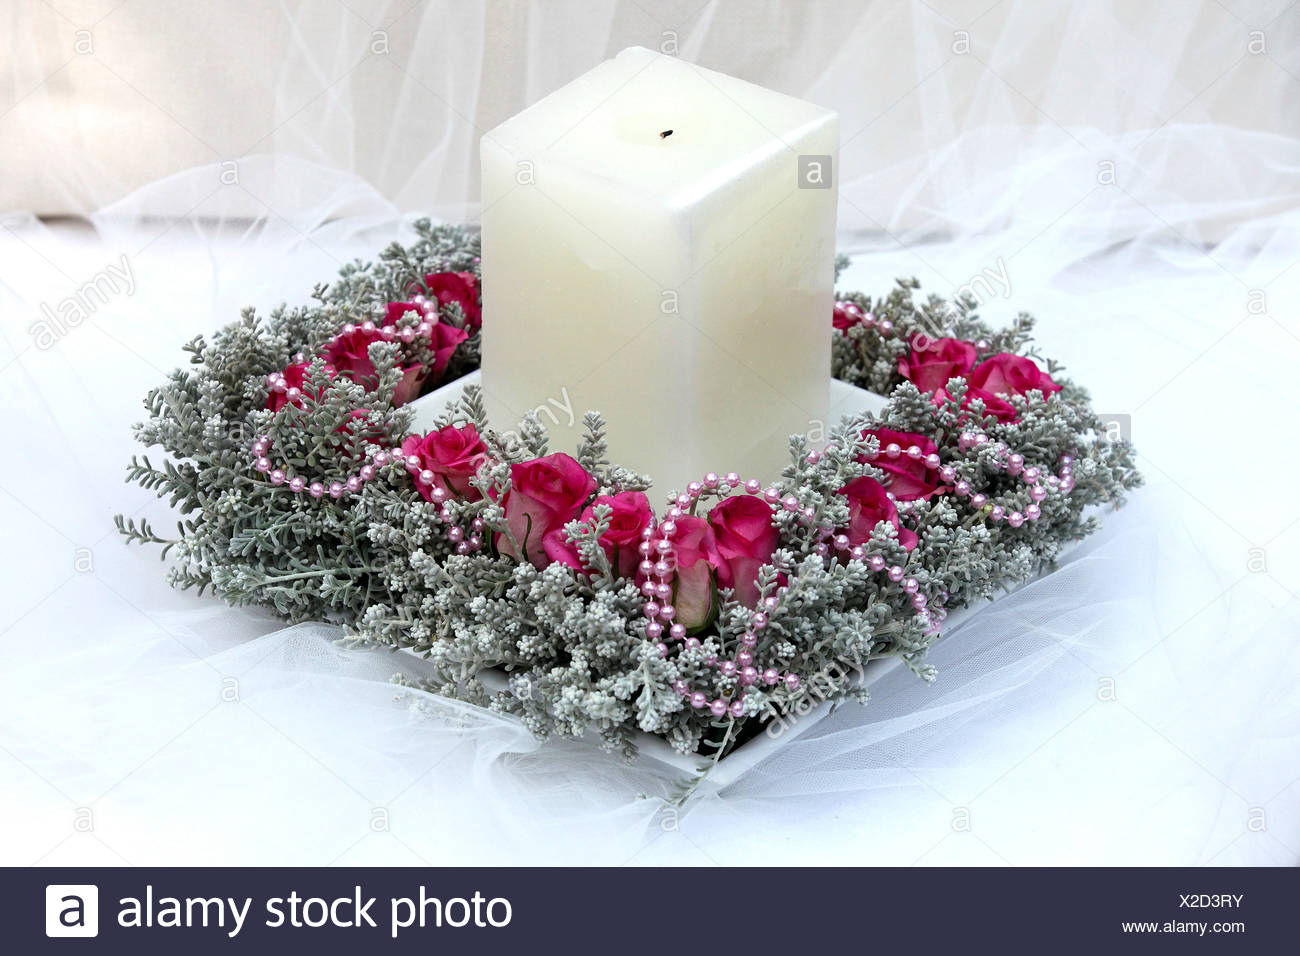 Flower Arrangement with candle on white - Stock Image